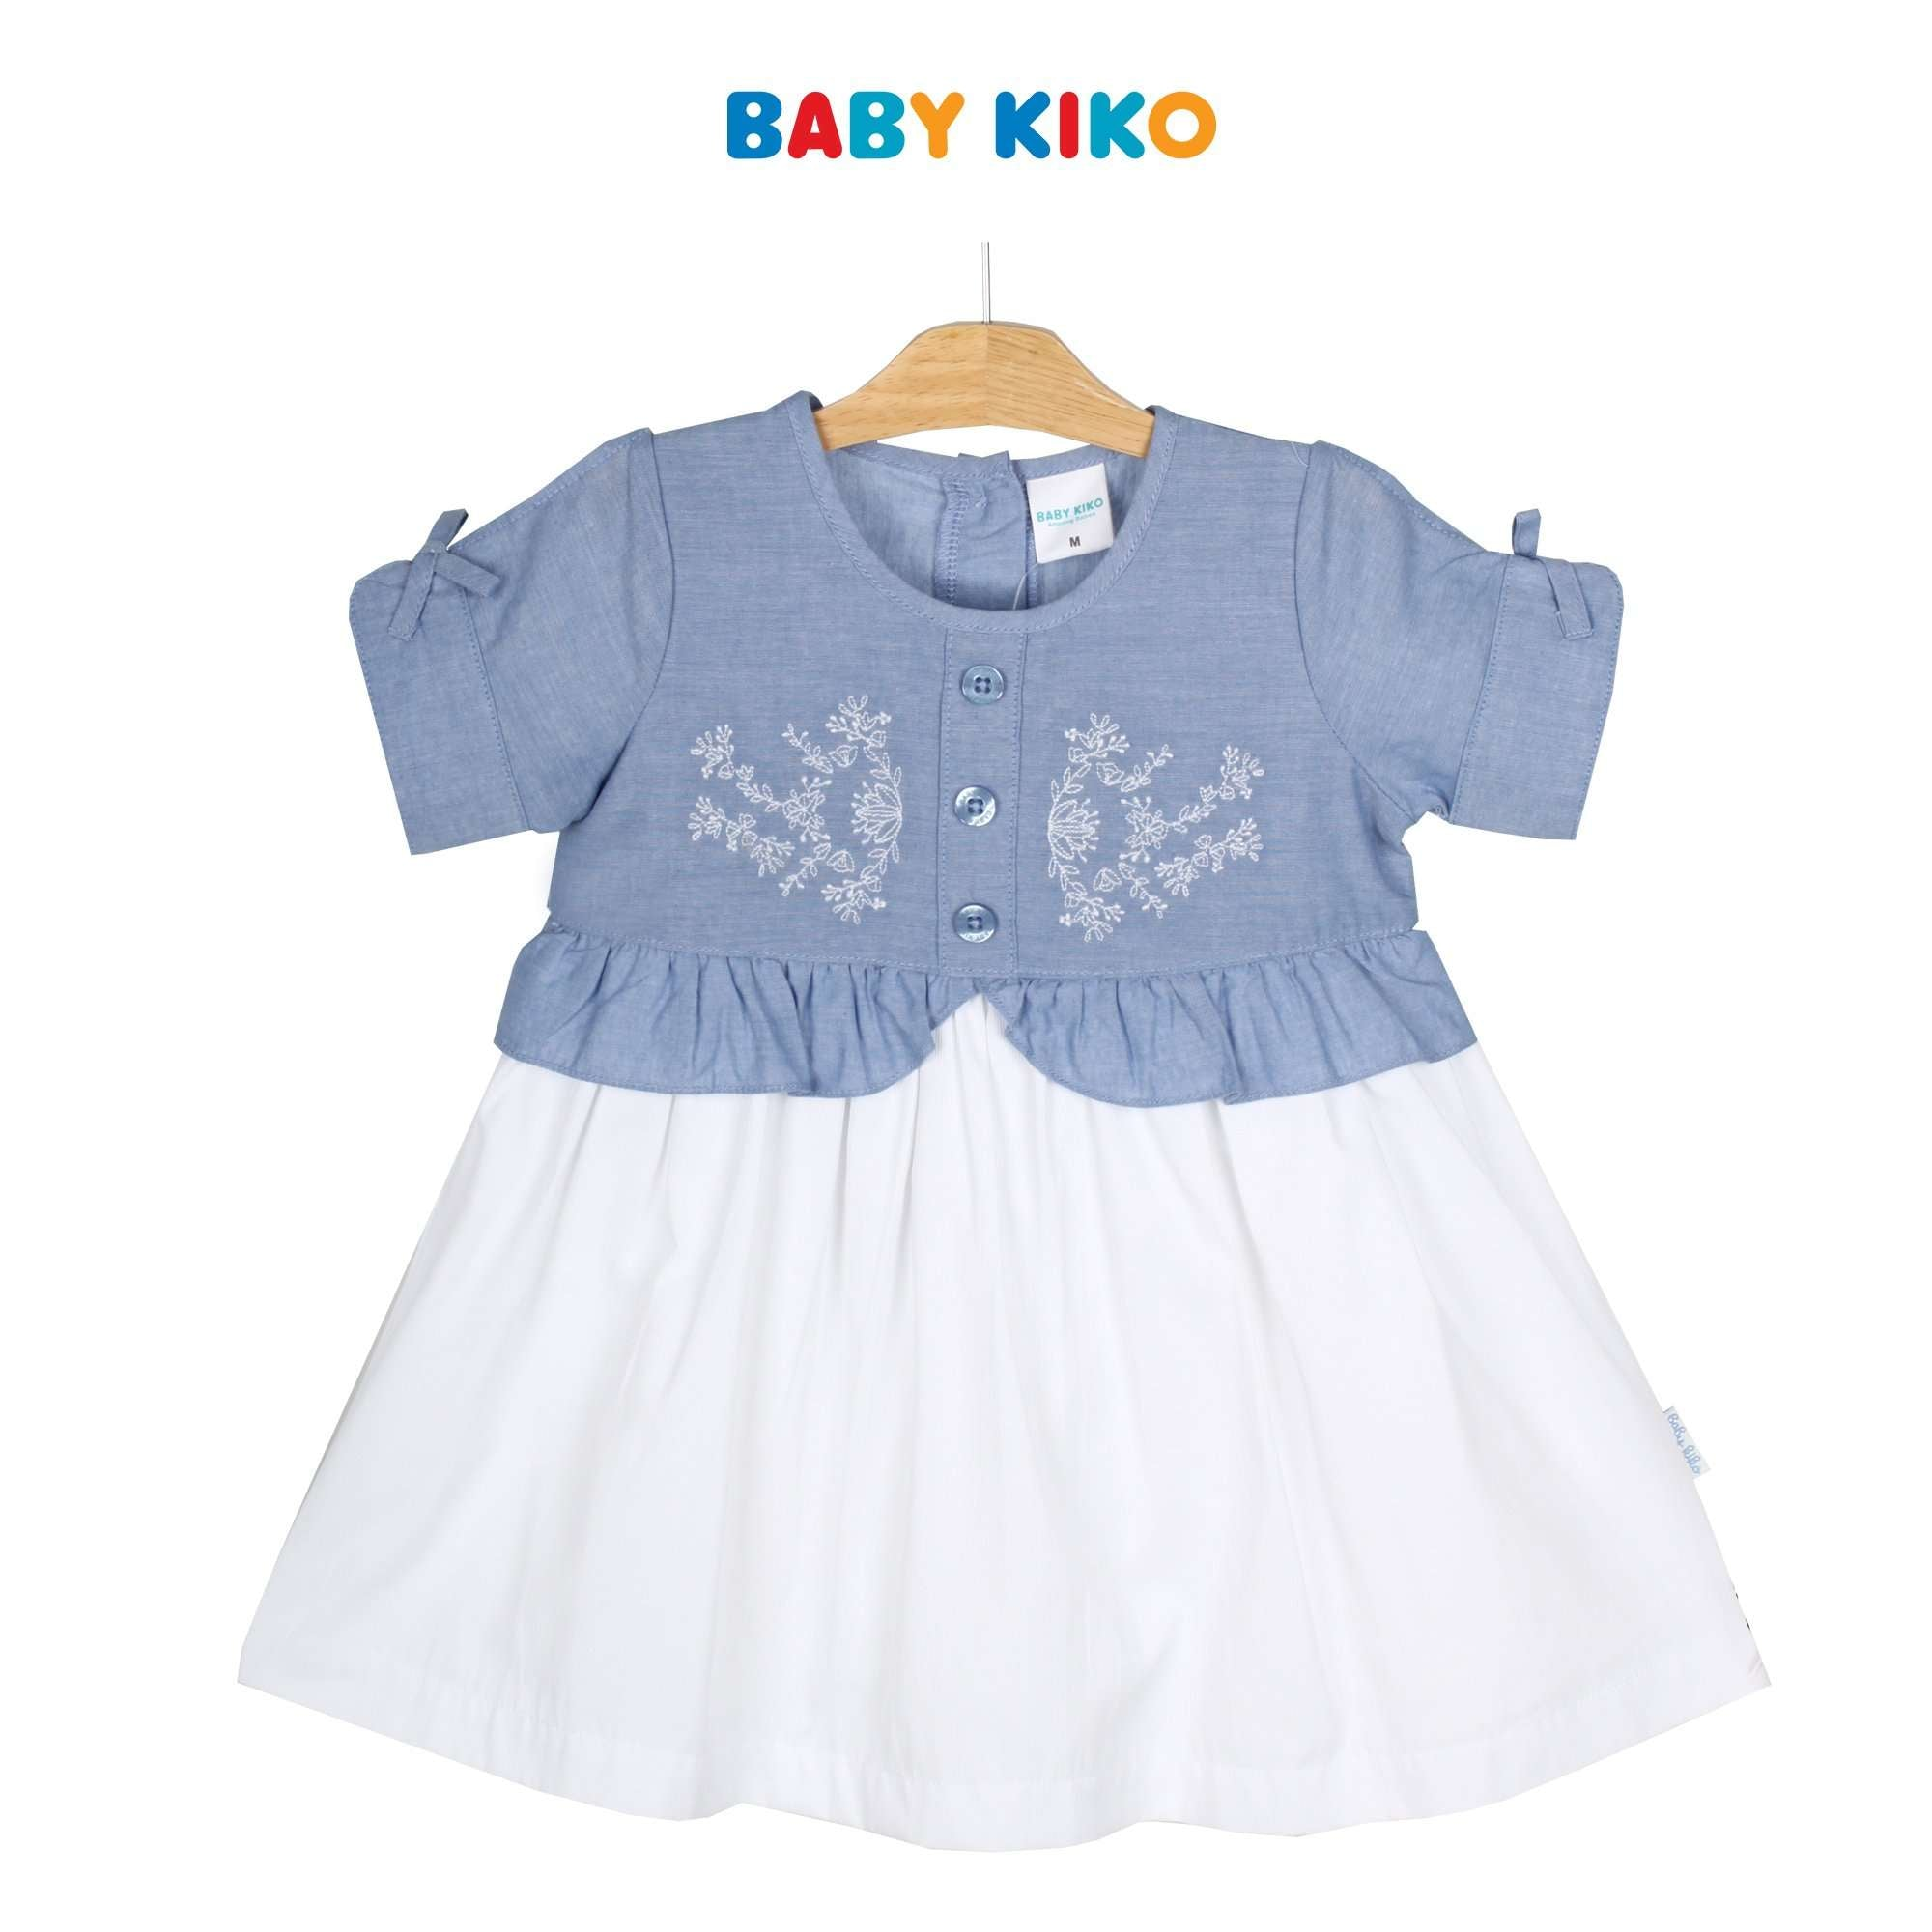 Baby KIKO Toddler Girl Short Sleeve Dress - Blue 315086-312 : Buy Baby KIKO online at CMG.MY